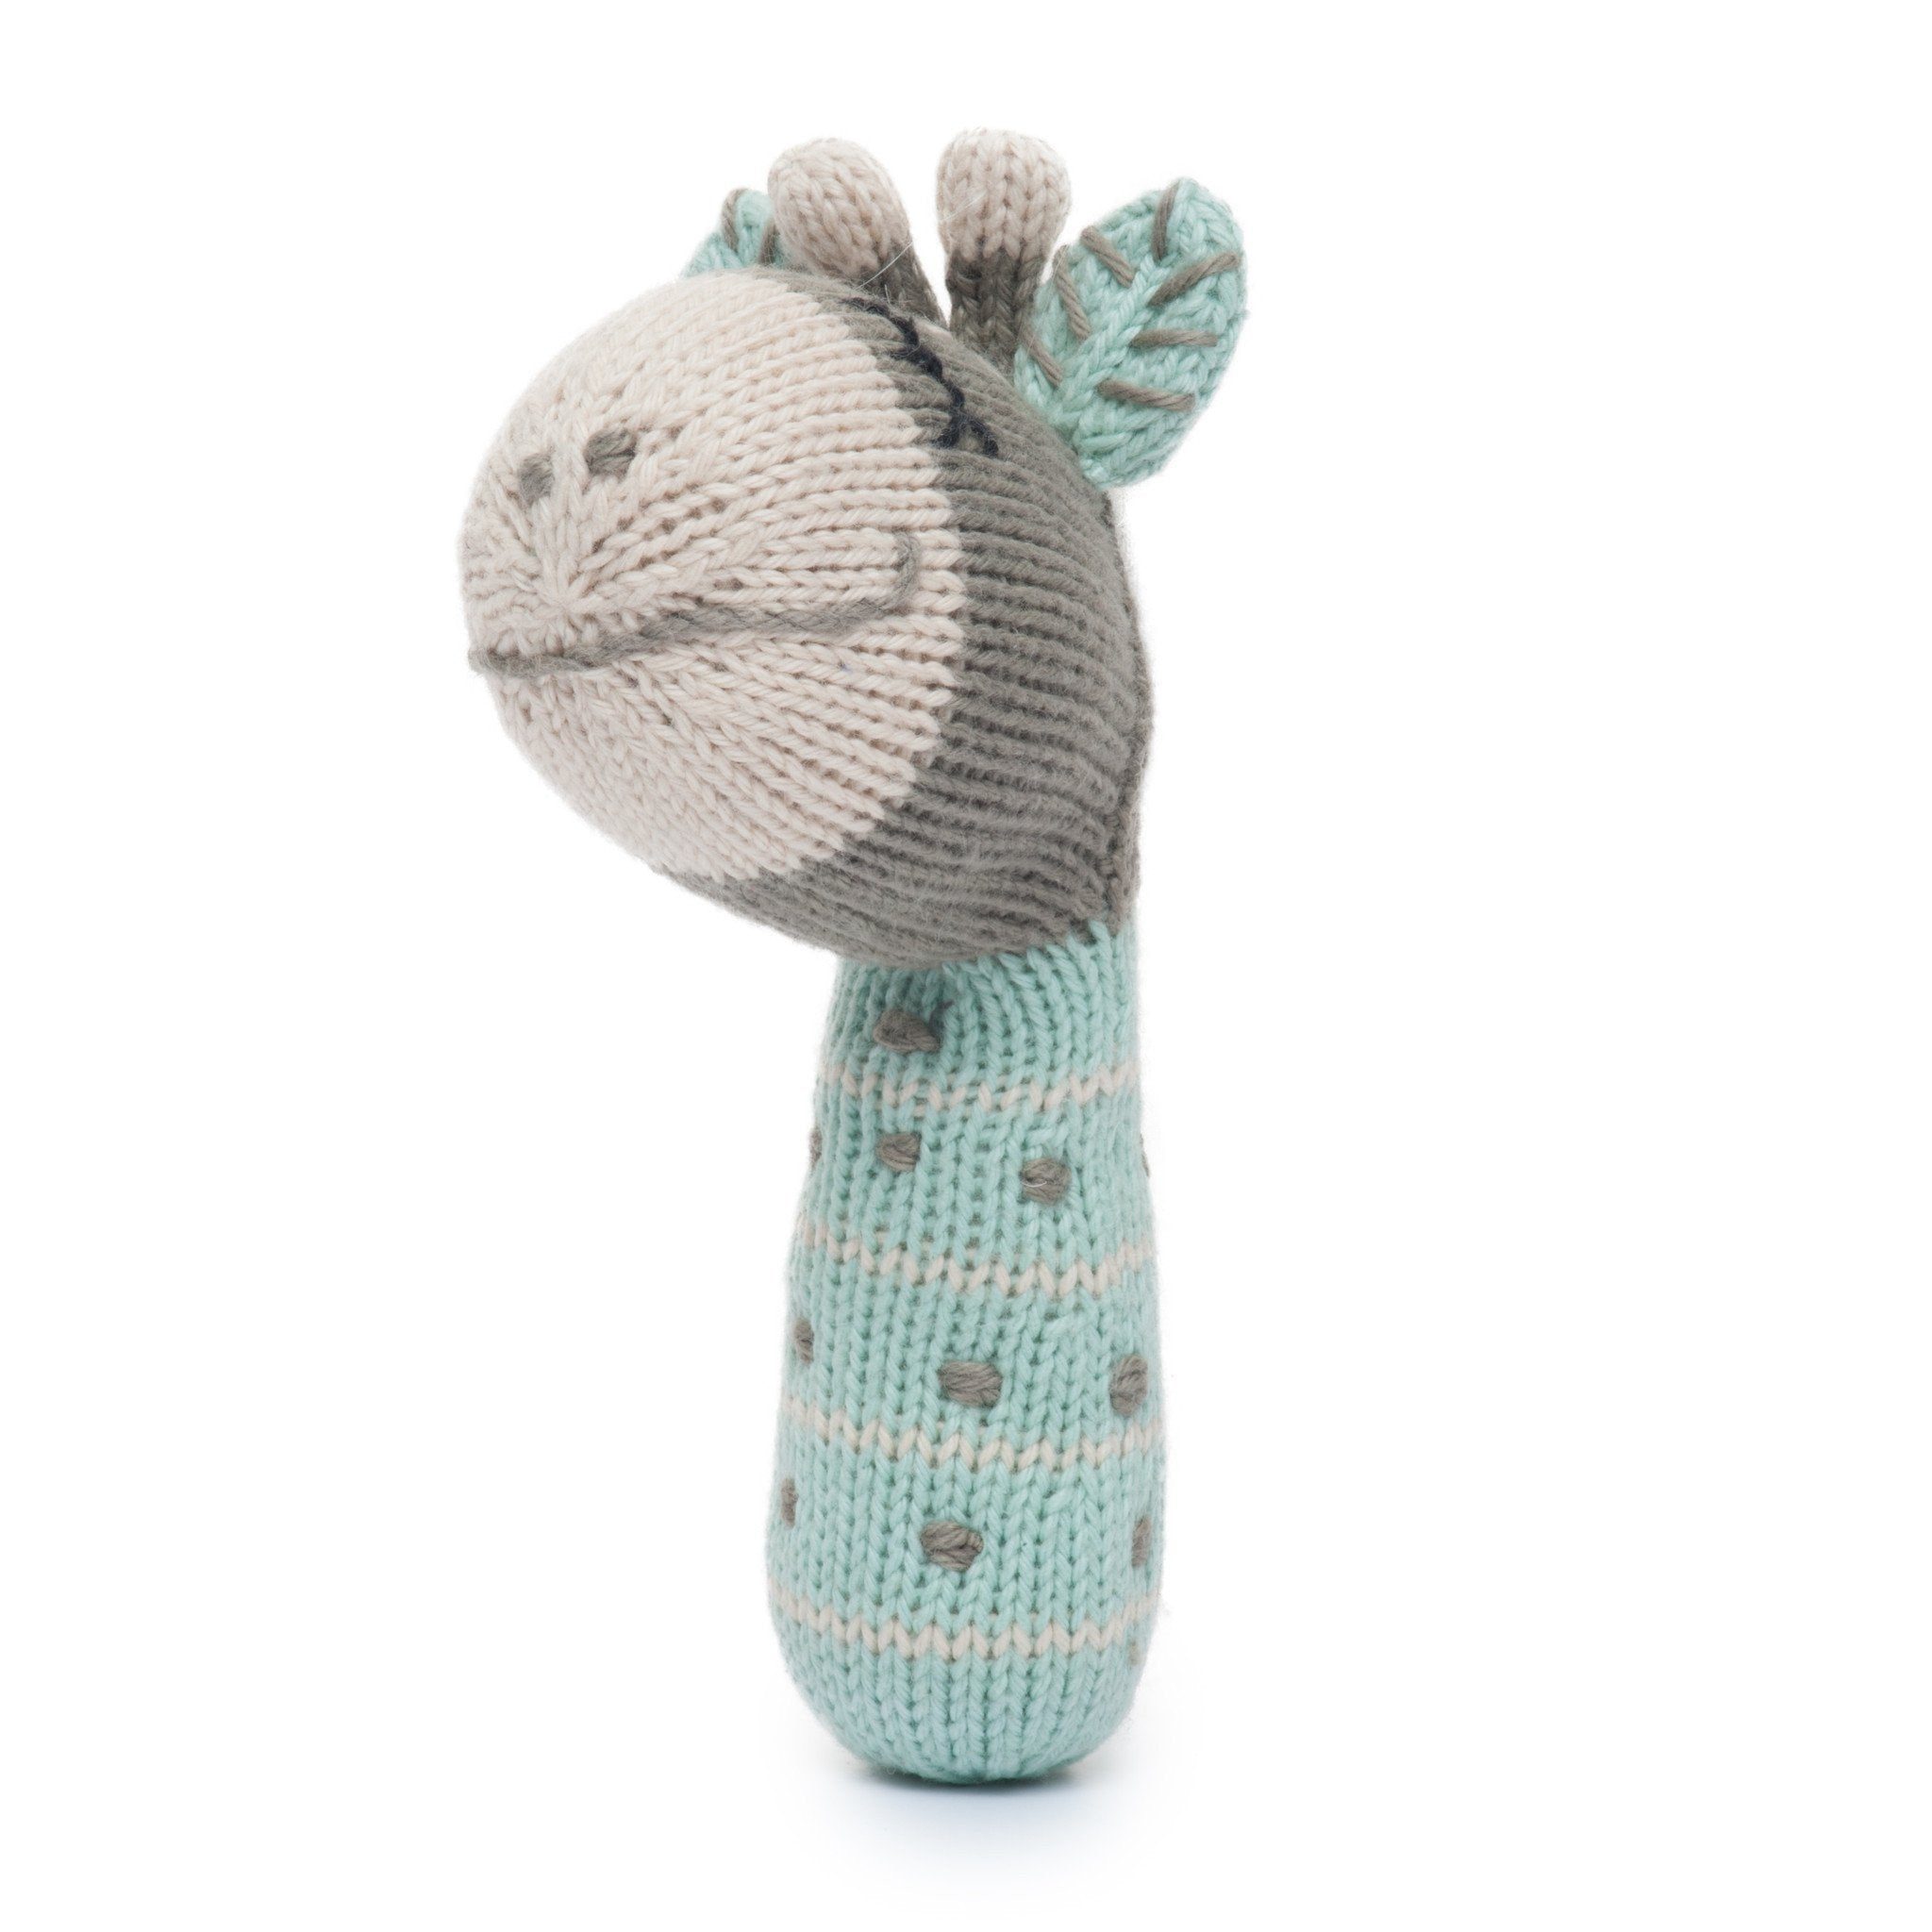 Finn and Emma Ami the Giraffe - organic cotton knitted baby rattle